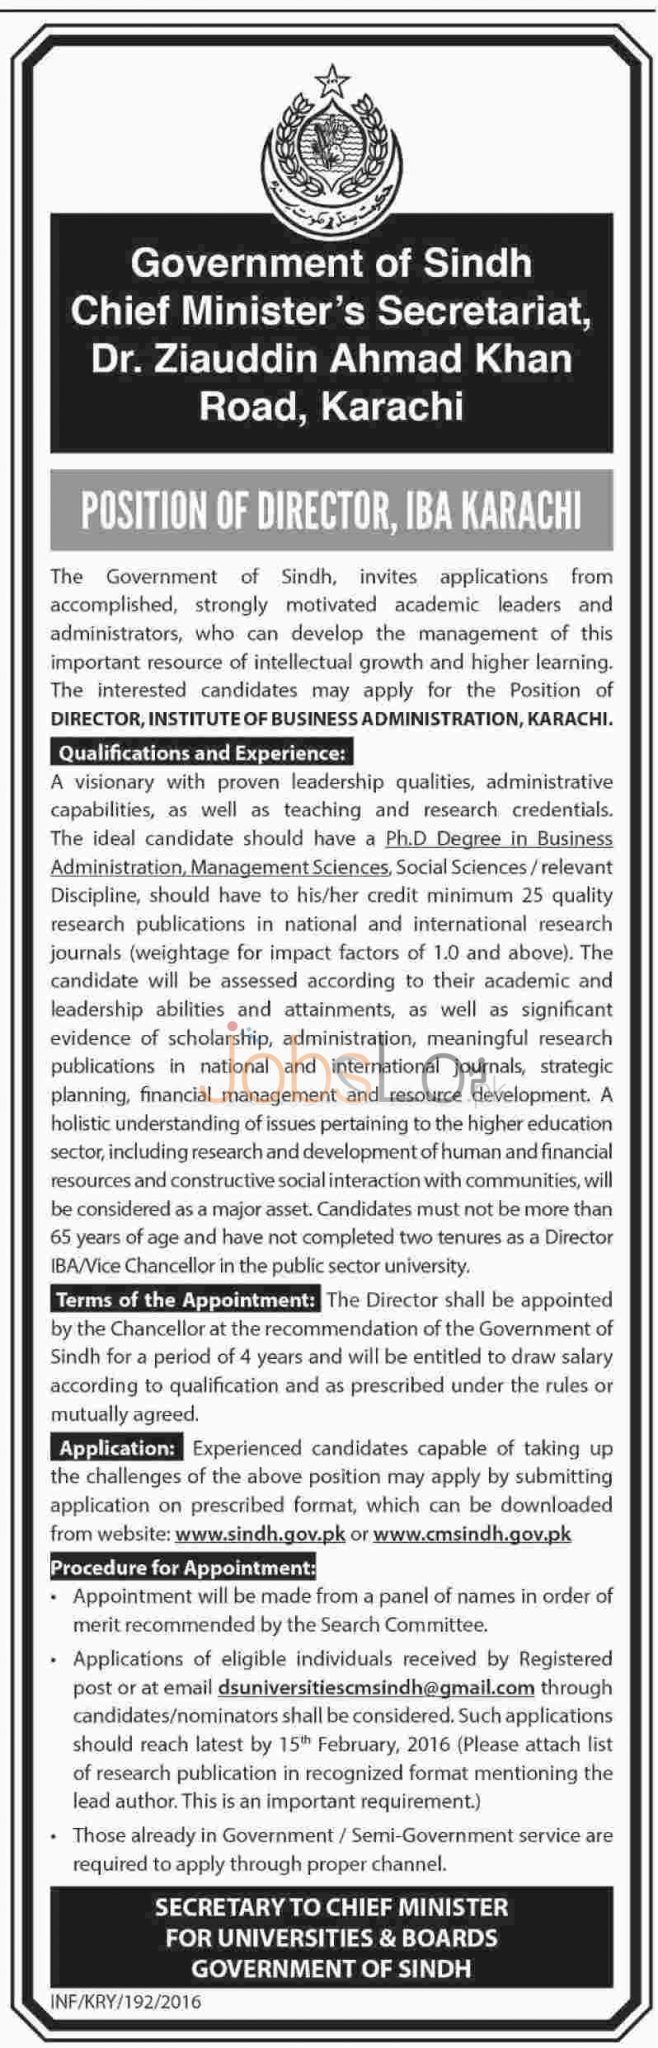 Employement Opportunities in University and Board of Govt of Sindh 2016 for Director in IBA Karachi